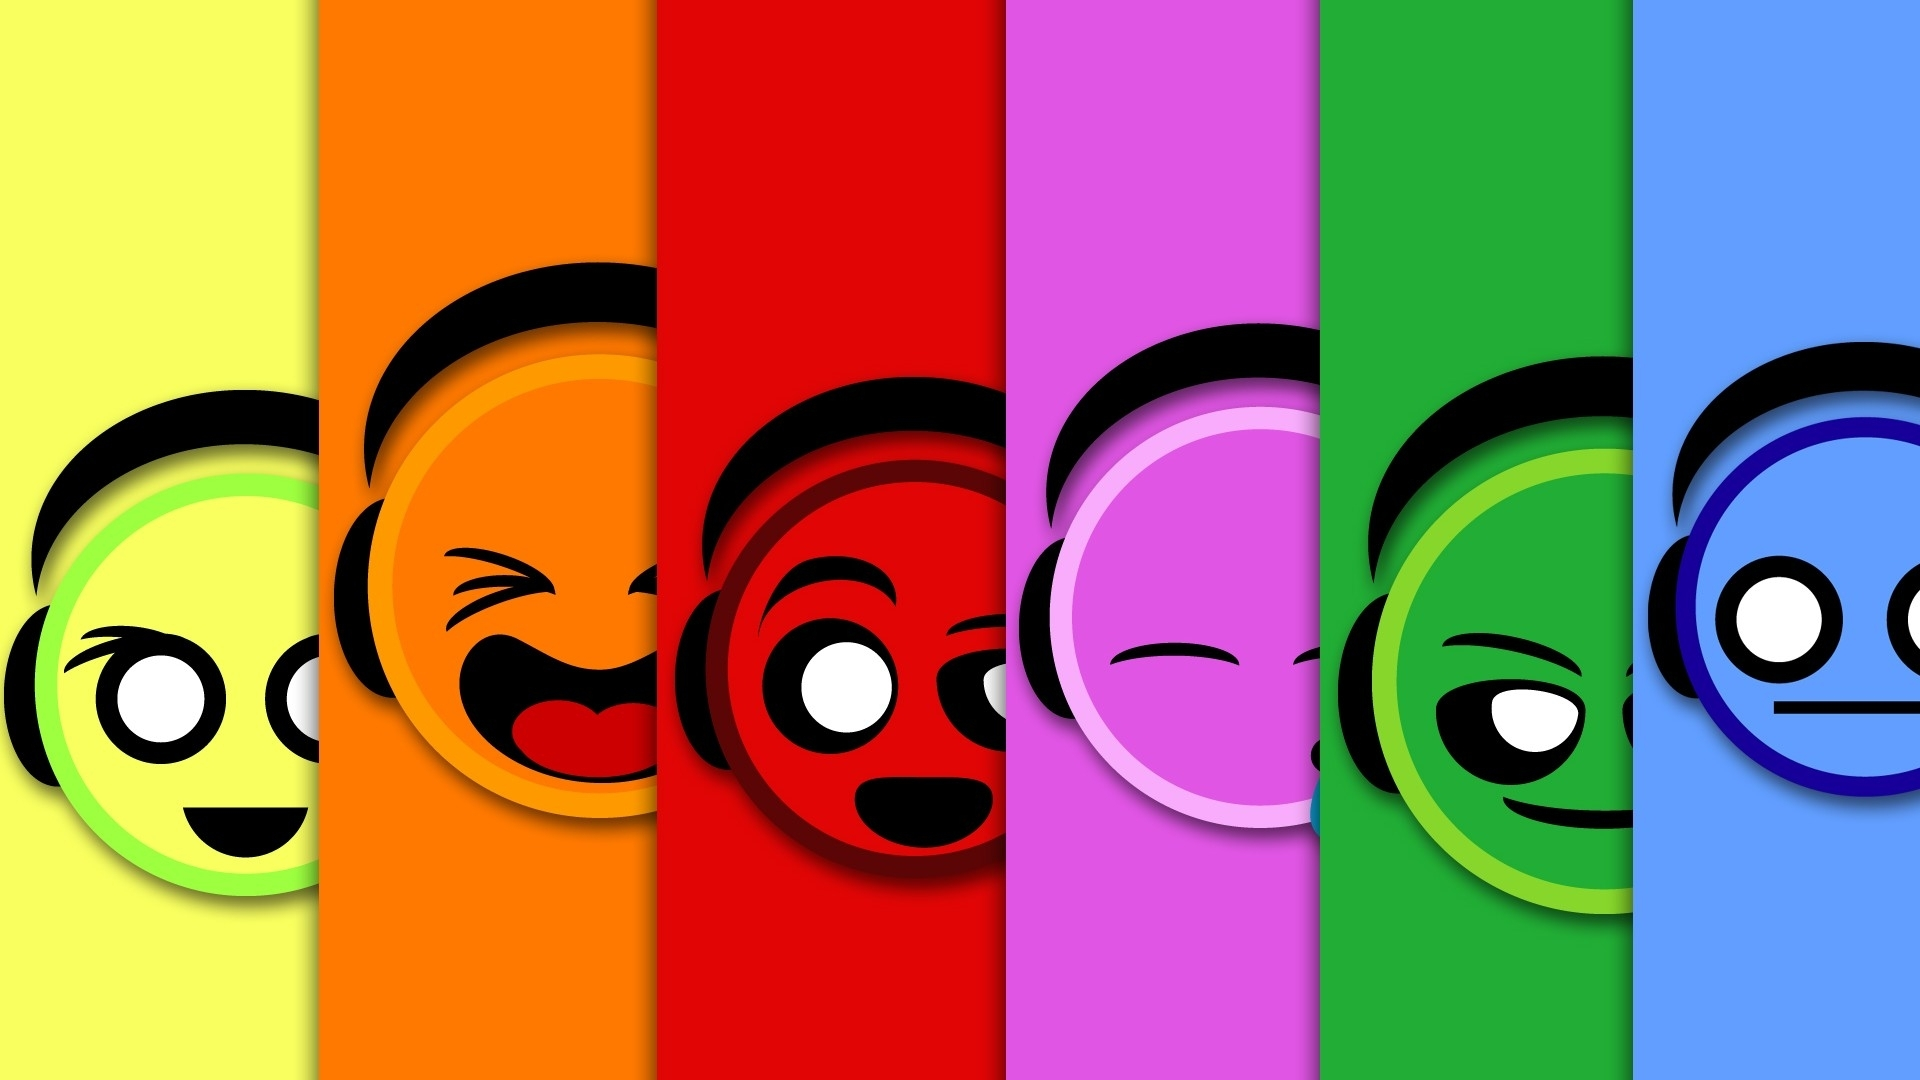 colorful smiley faces #6933437